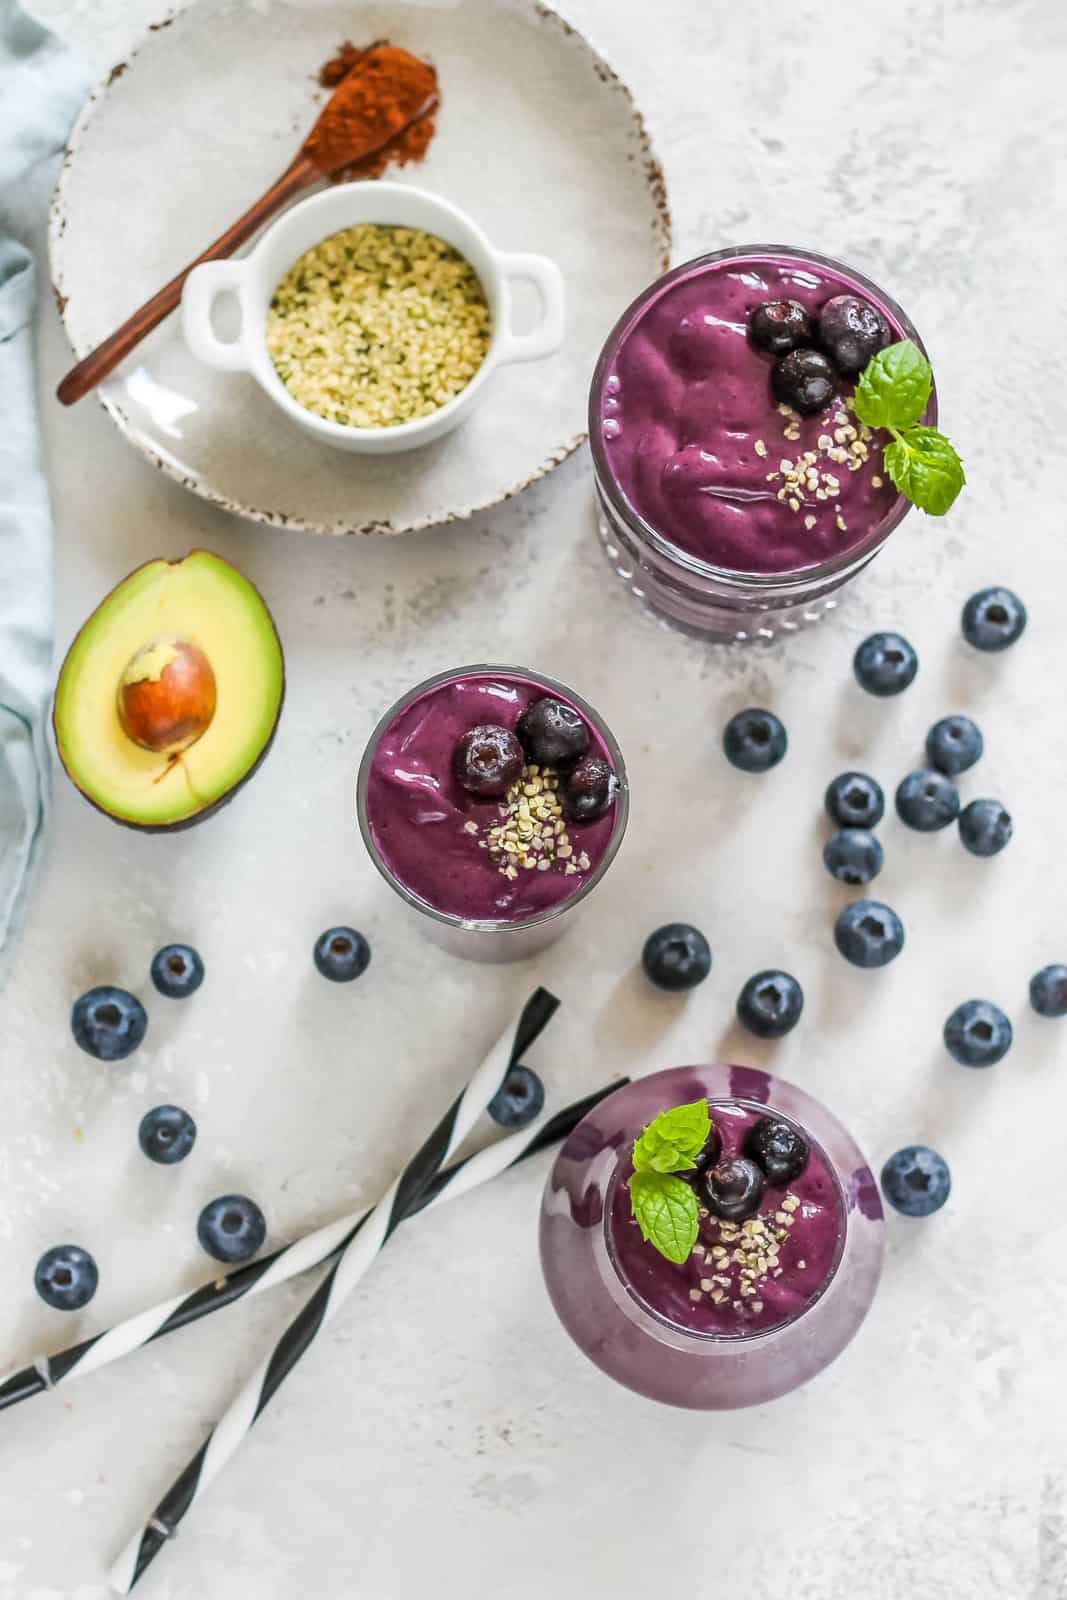 overhead photo with three glasses of blueberry smoothie on a grey background. There are blueberries and avocado scattered around.